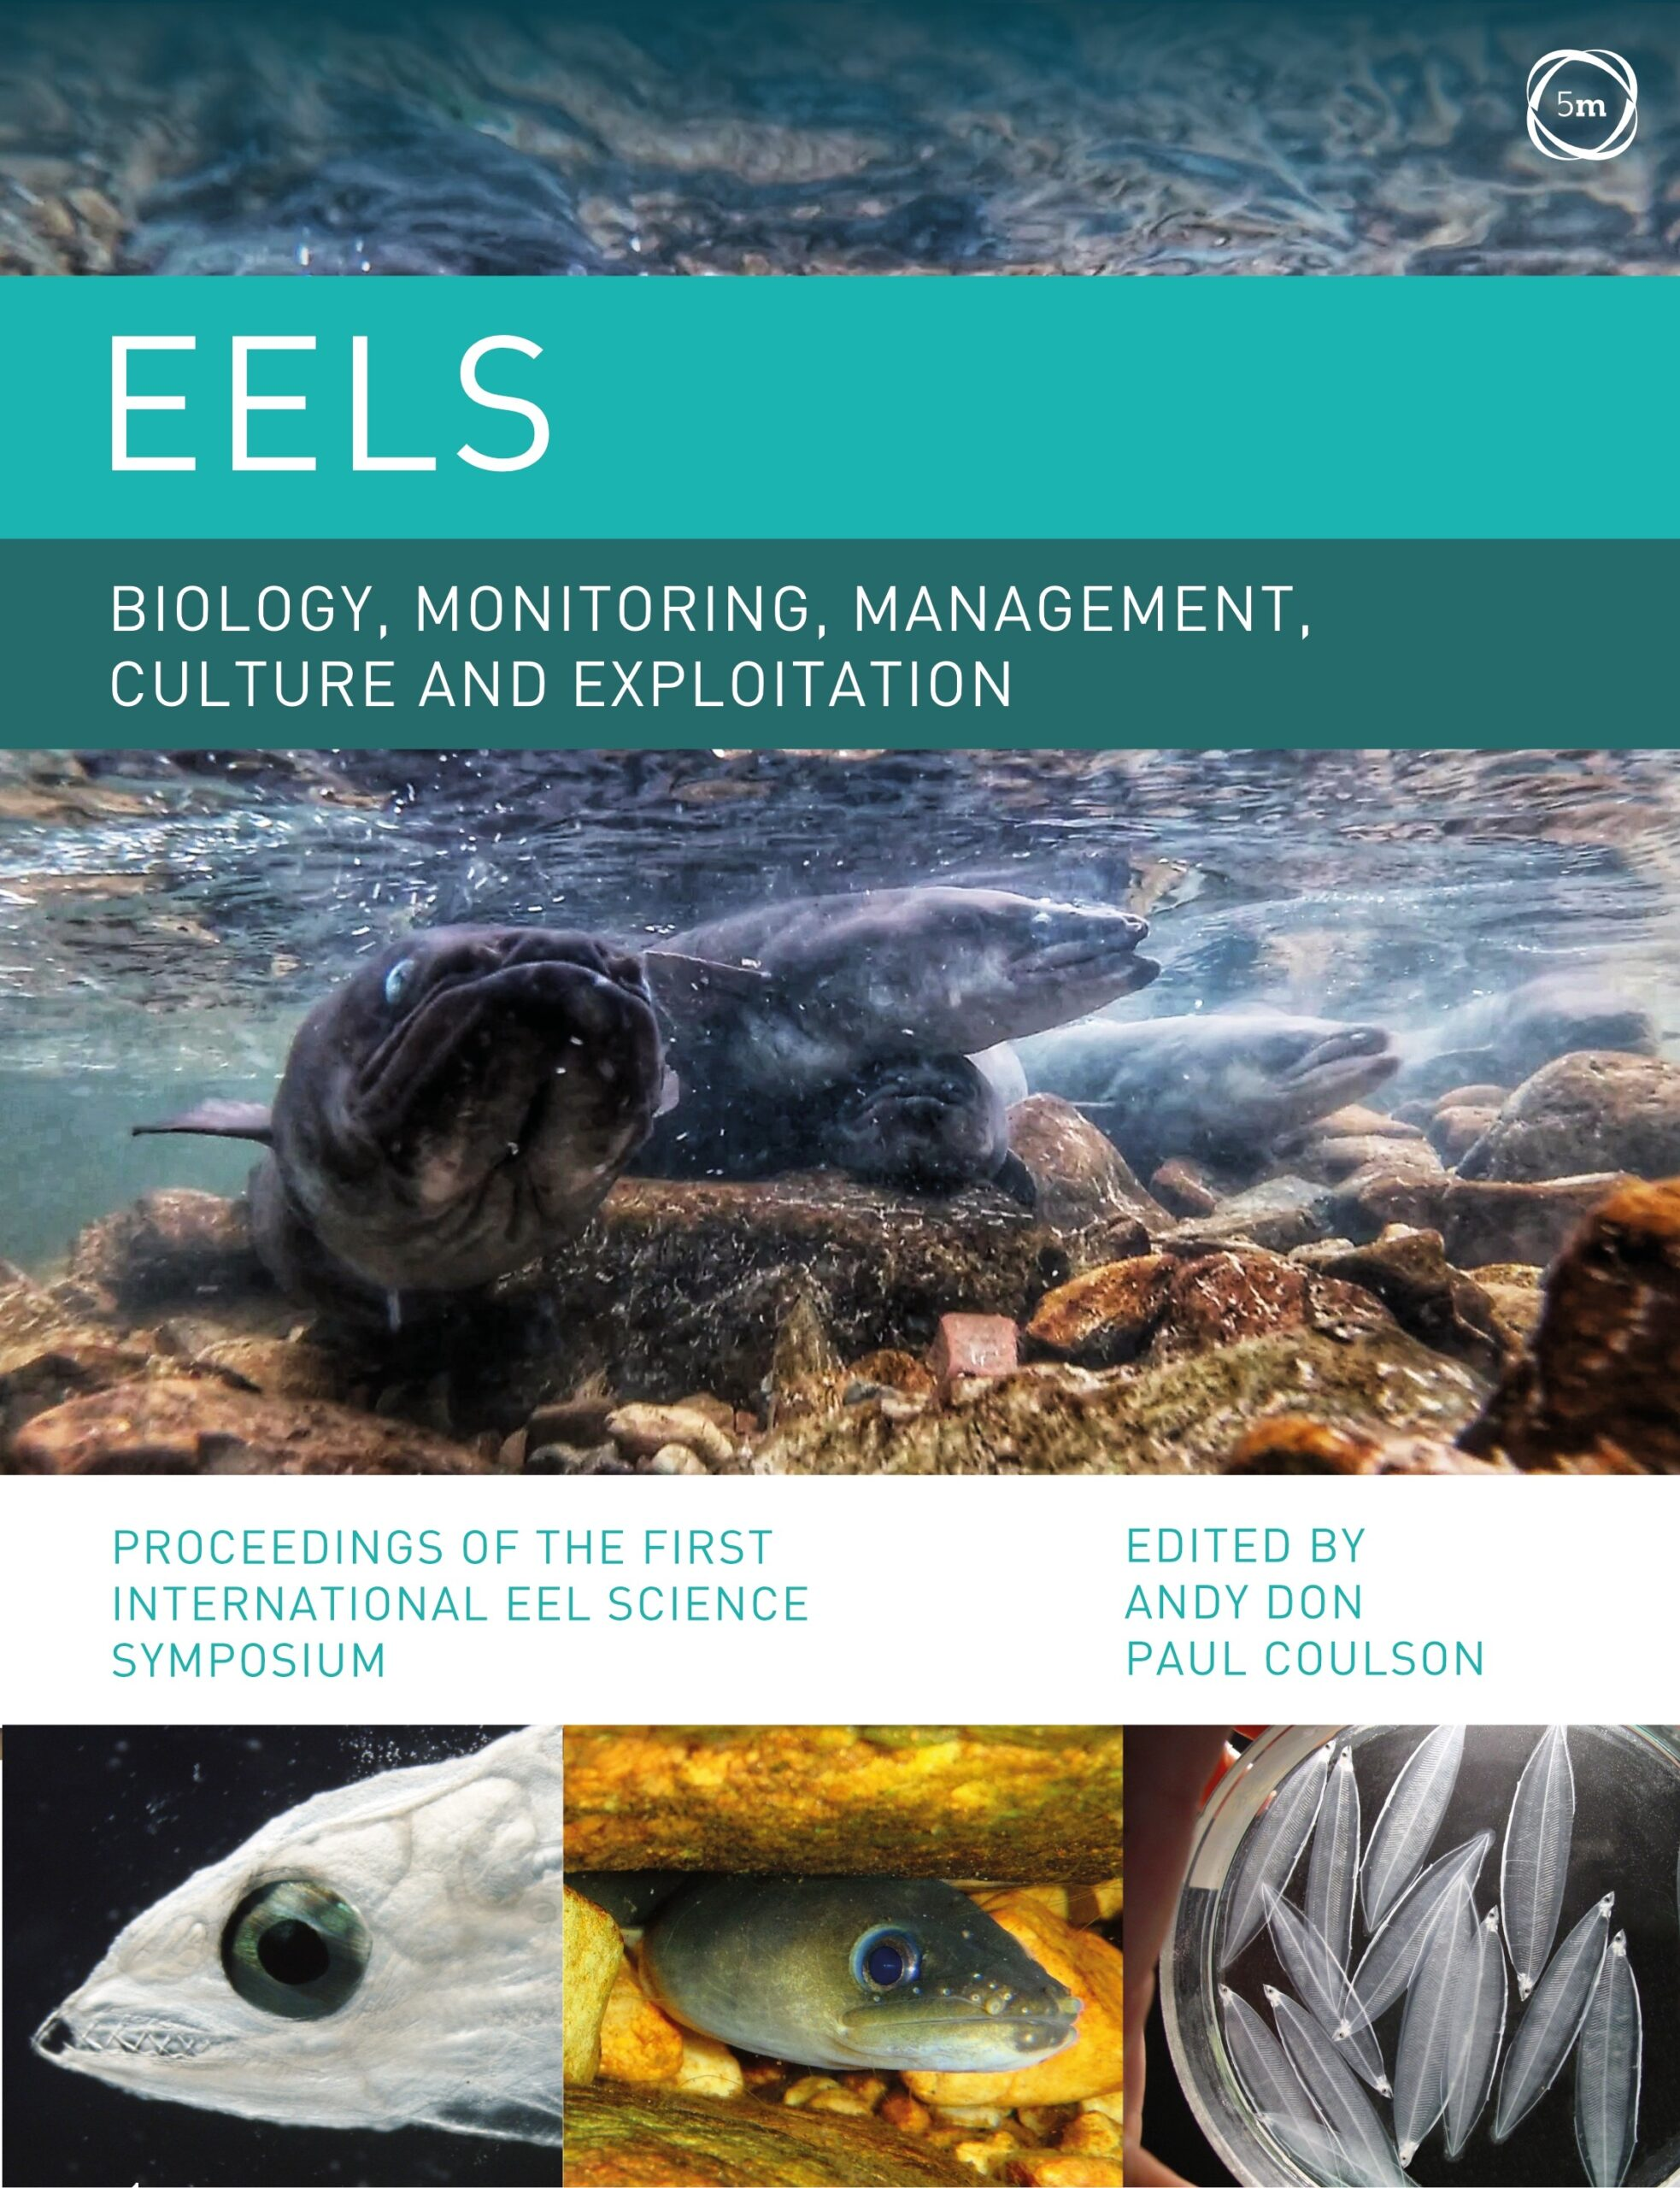 Eels Biology, Monitoring, Management, Culture and Exploitation: Proceedings of the First International Eel Science Symposium